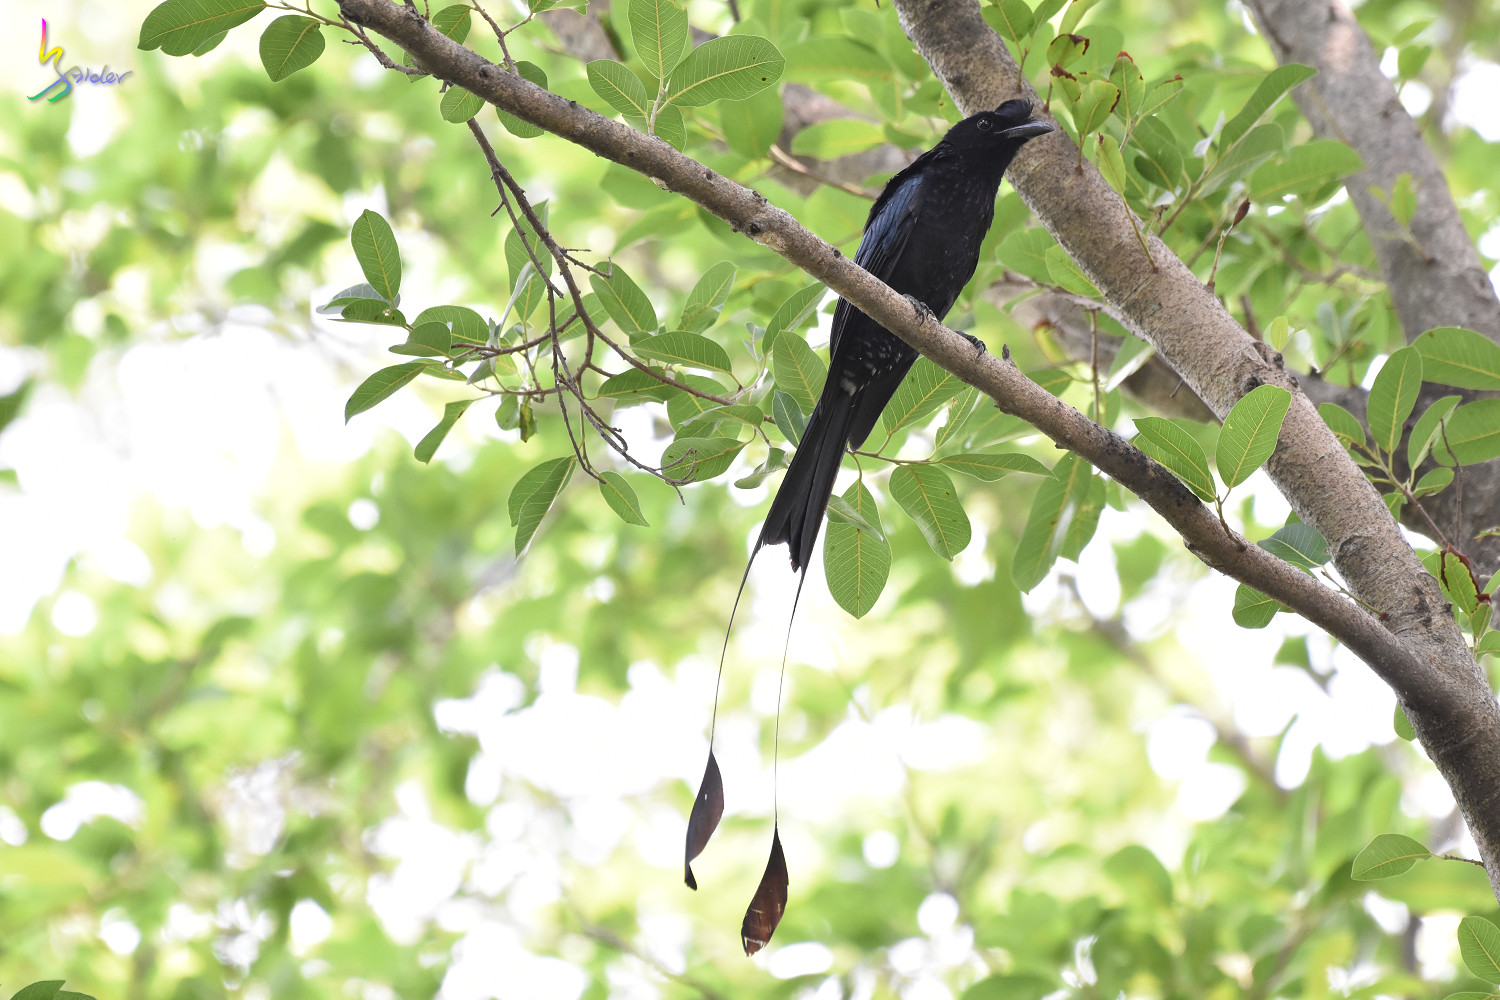 Greater_Racket-tailed_Drongo_1457